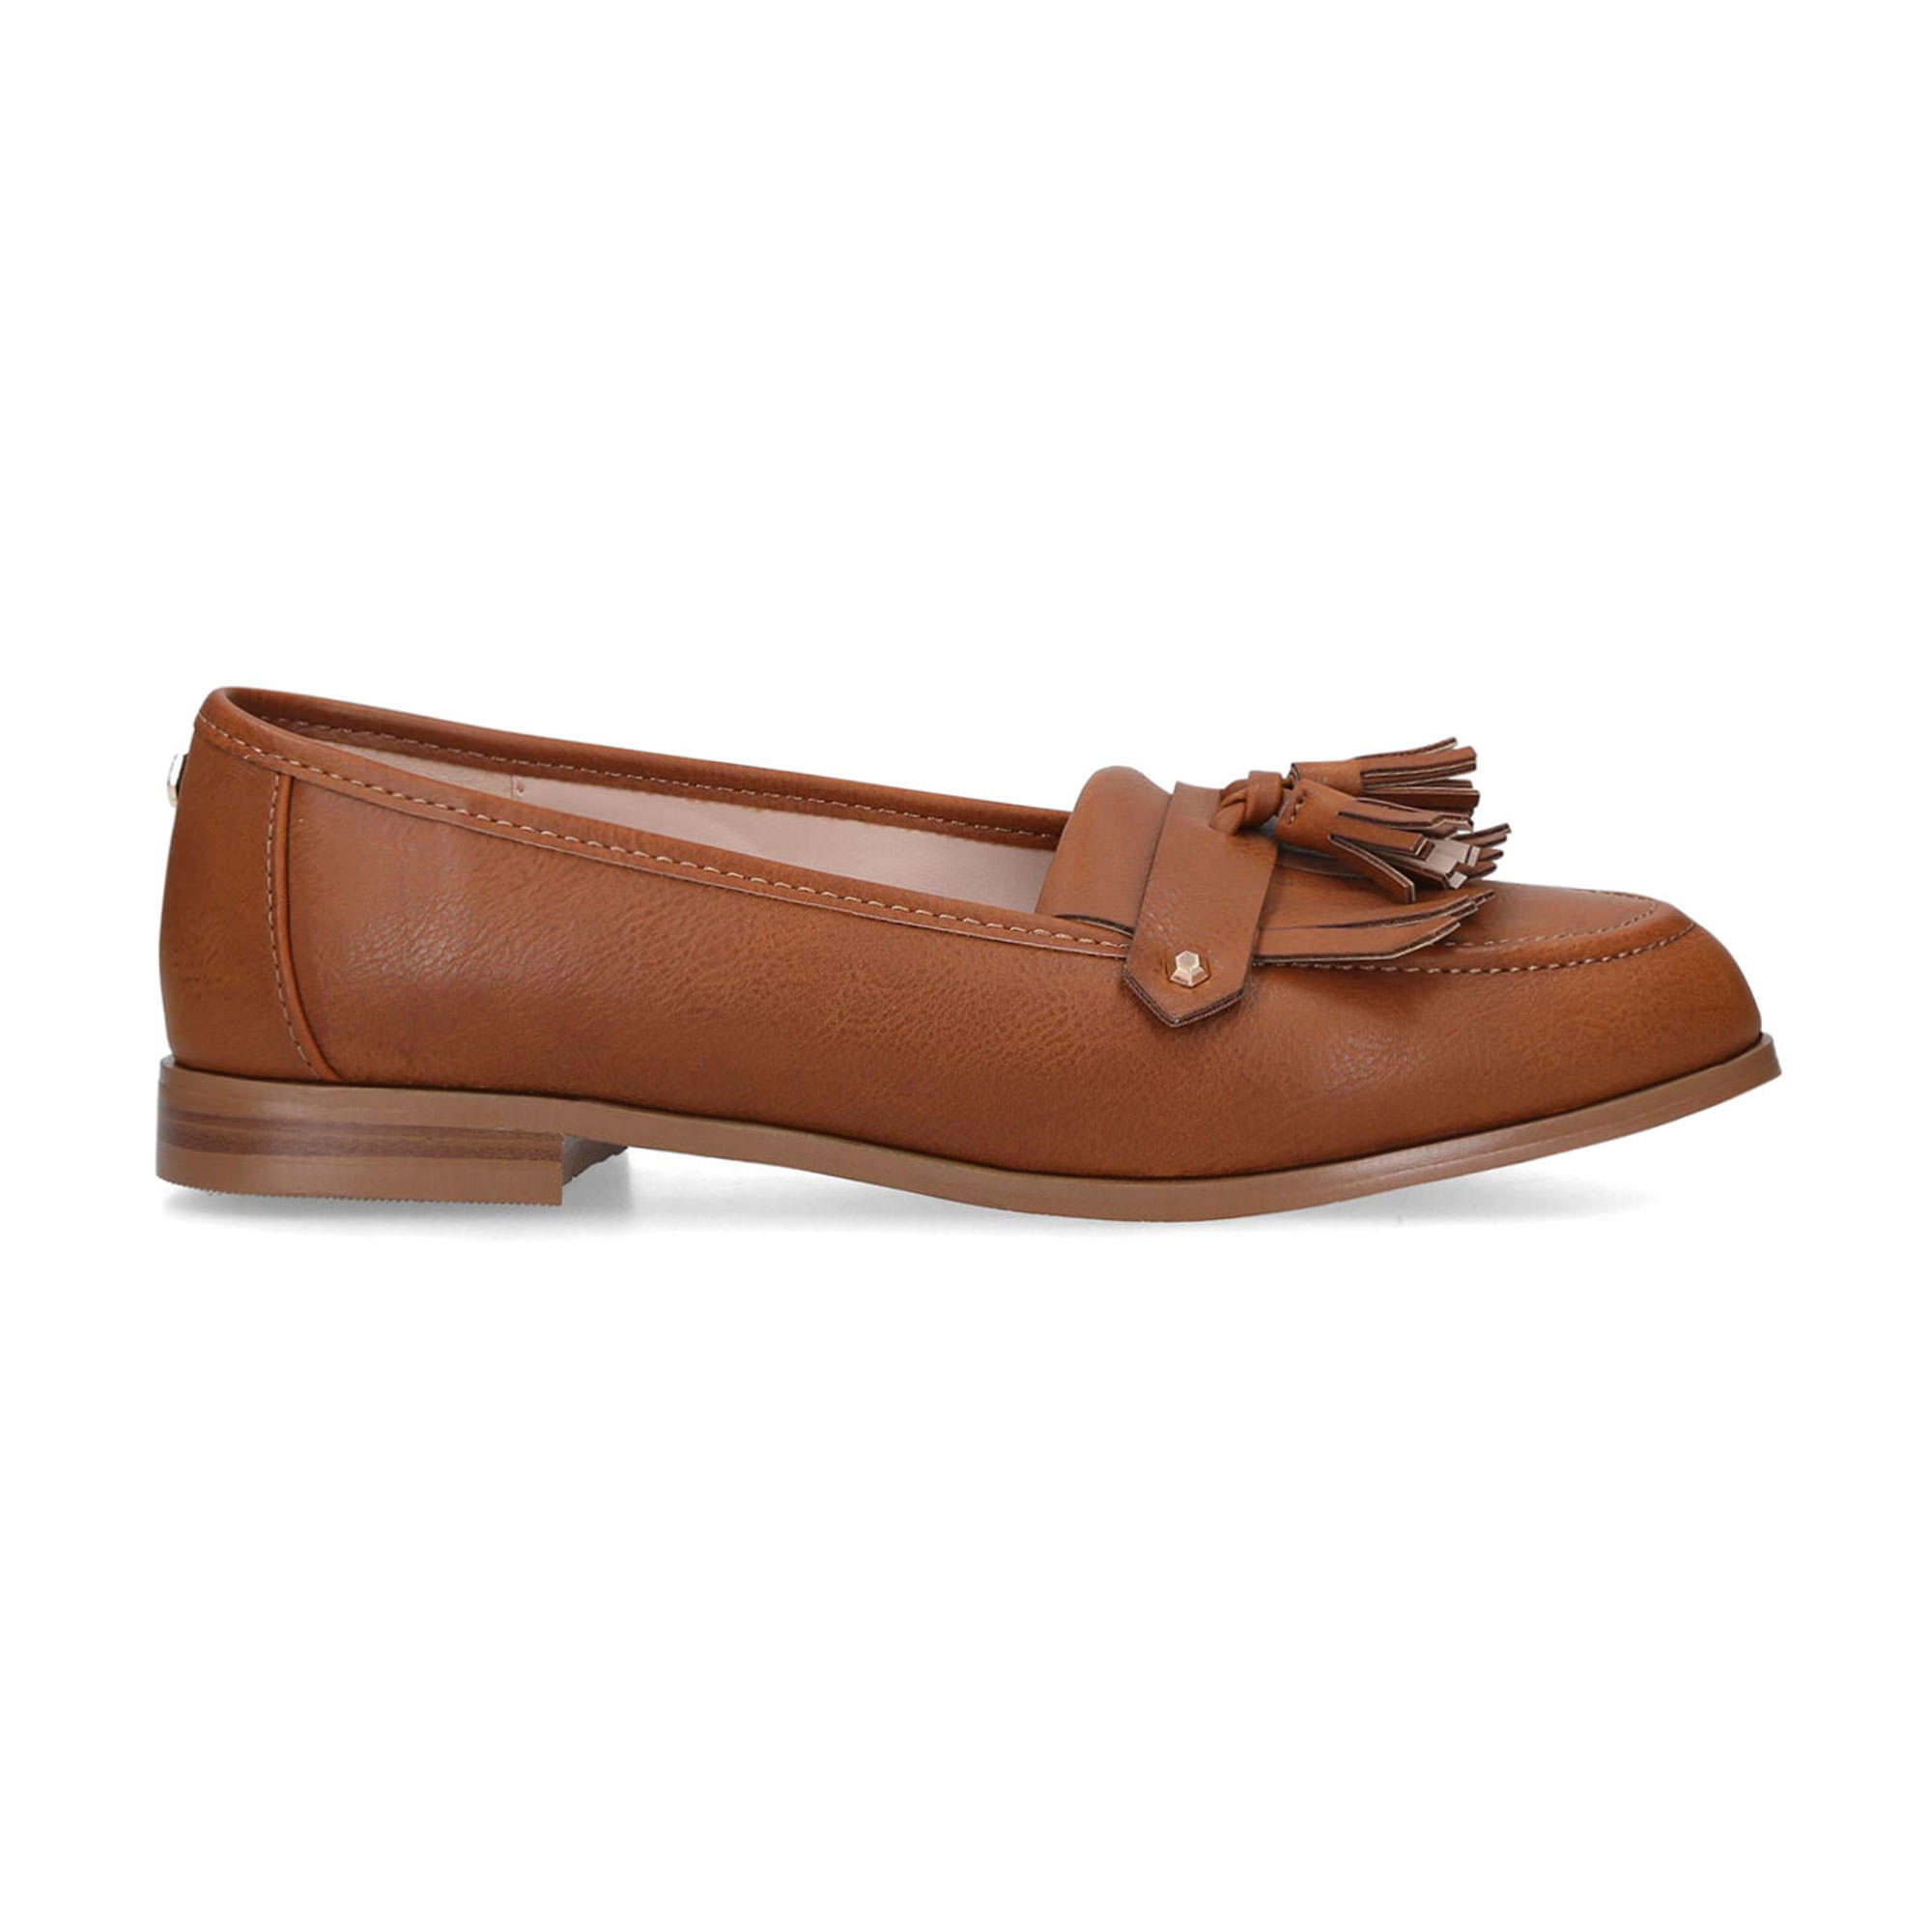 5059093589829: Magpie Loafers